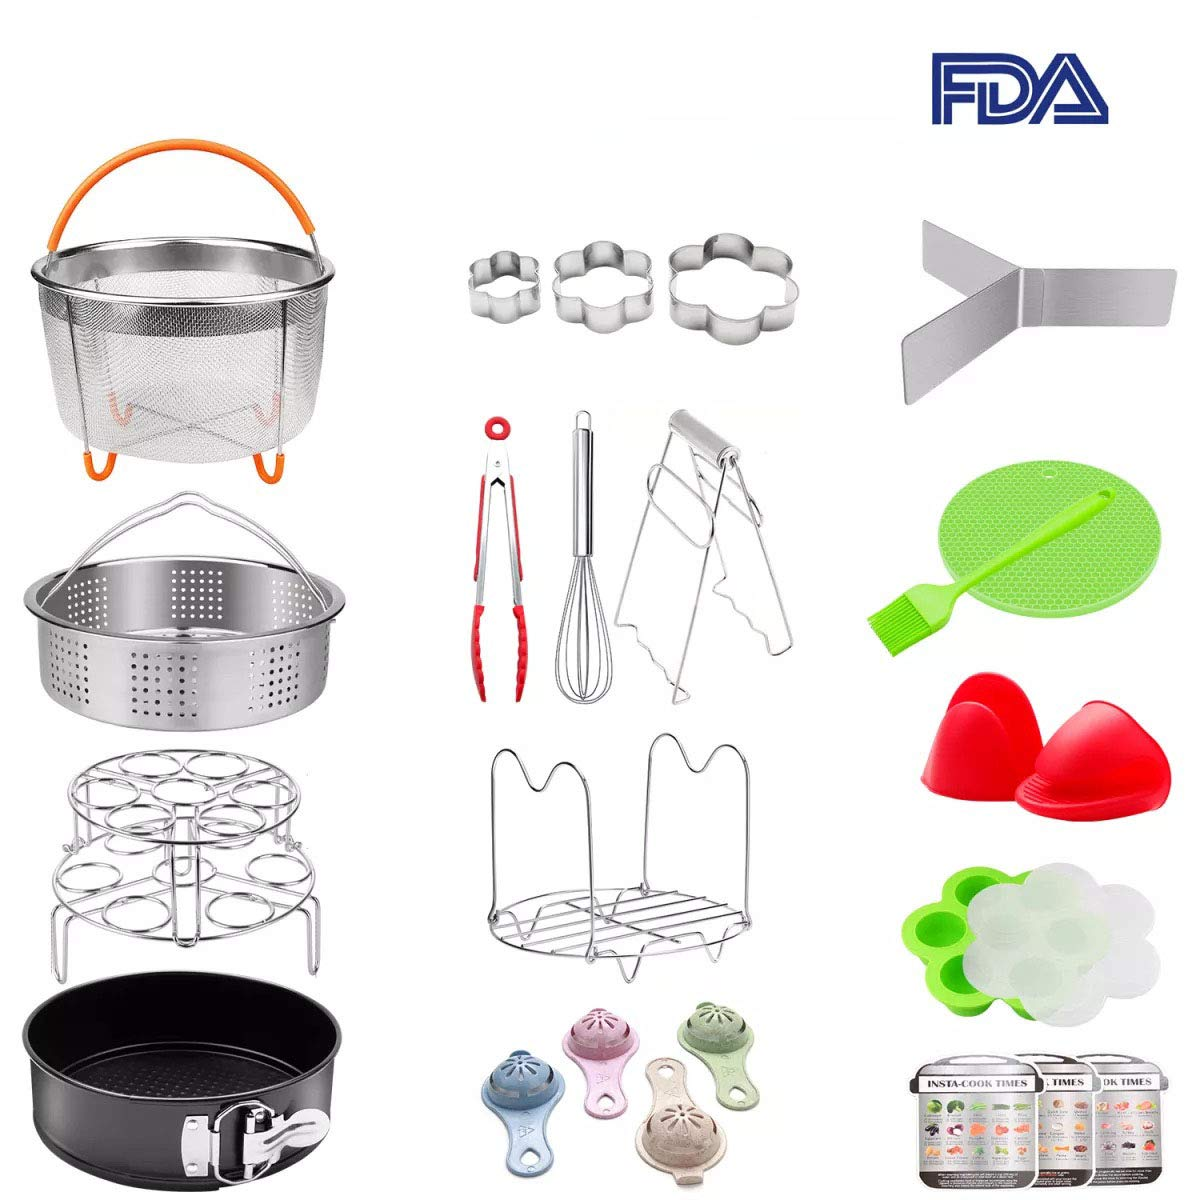 25 pieces Pressure Cooker Accessories Set Compatible with Instant Pot 6 qt 8 Quart- Steamer Basket, Springform Pan, Stackable Egg Steamer Rack, Egg Beater, Silicone Trivet Mats & More